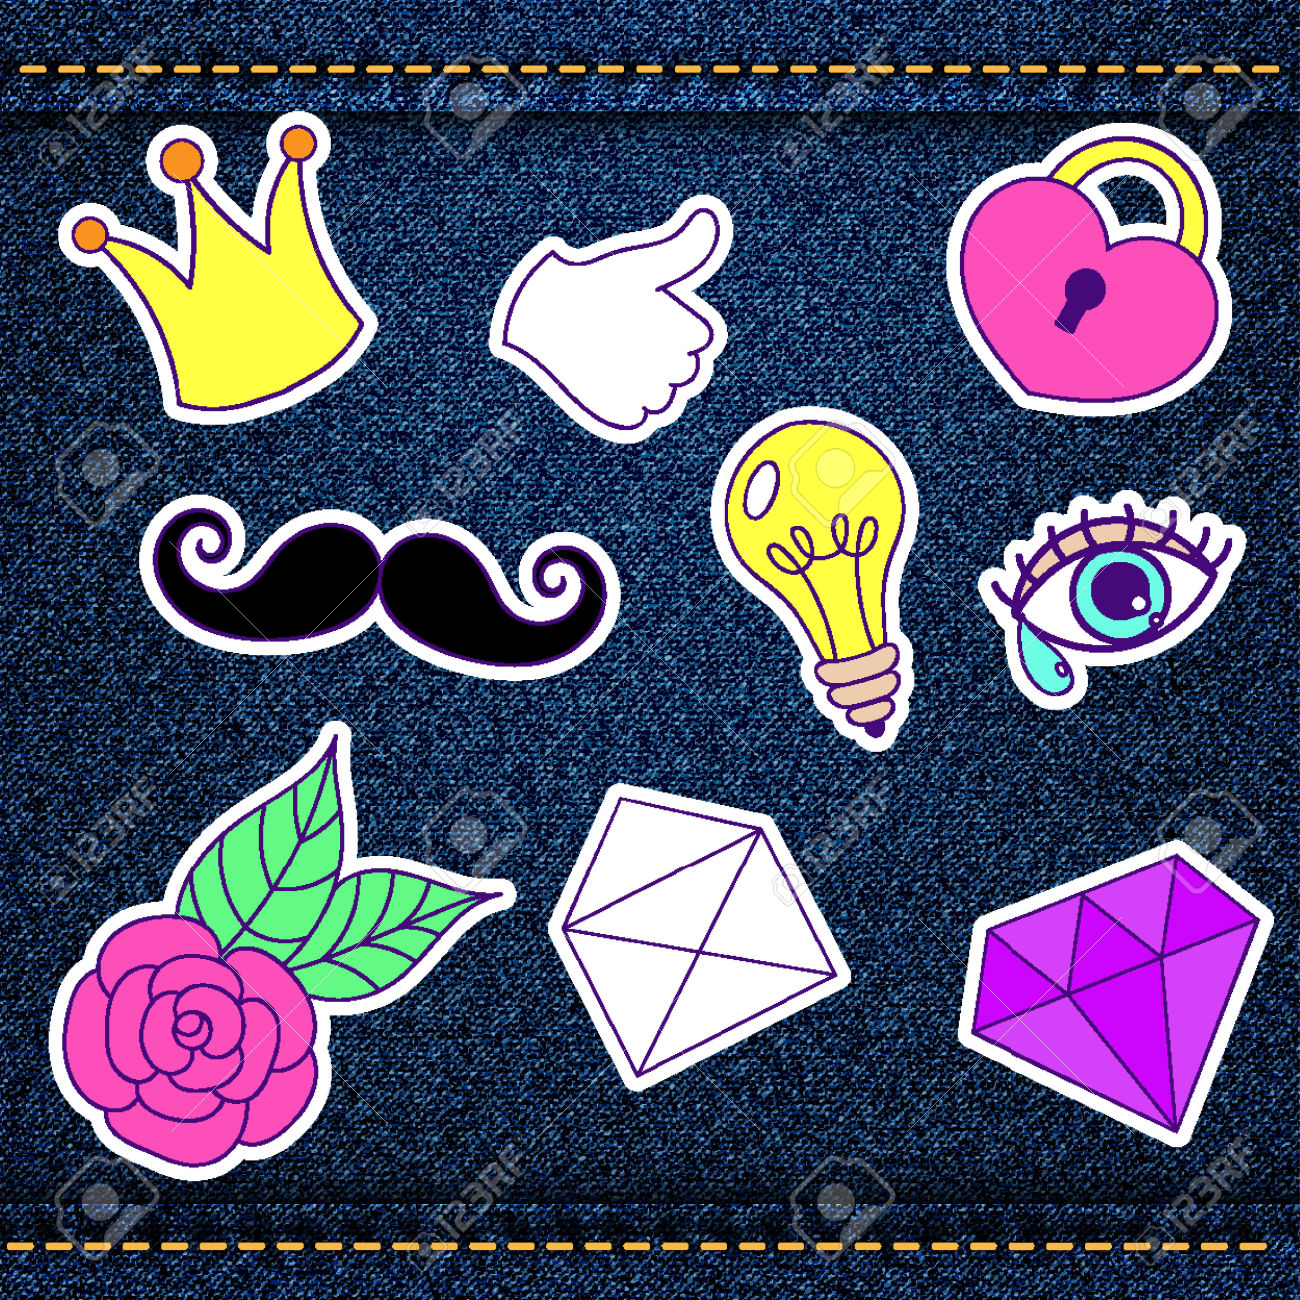 511 Patch Up Stock Vector Illustration And Royalty Free Patch Up.